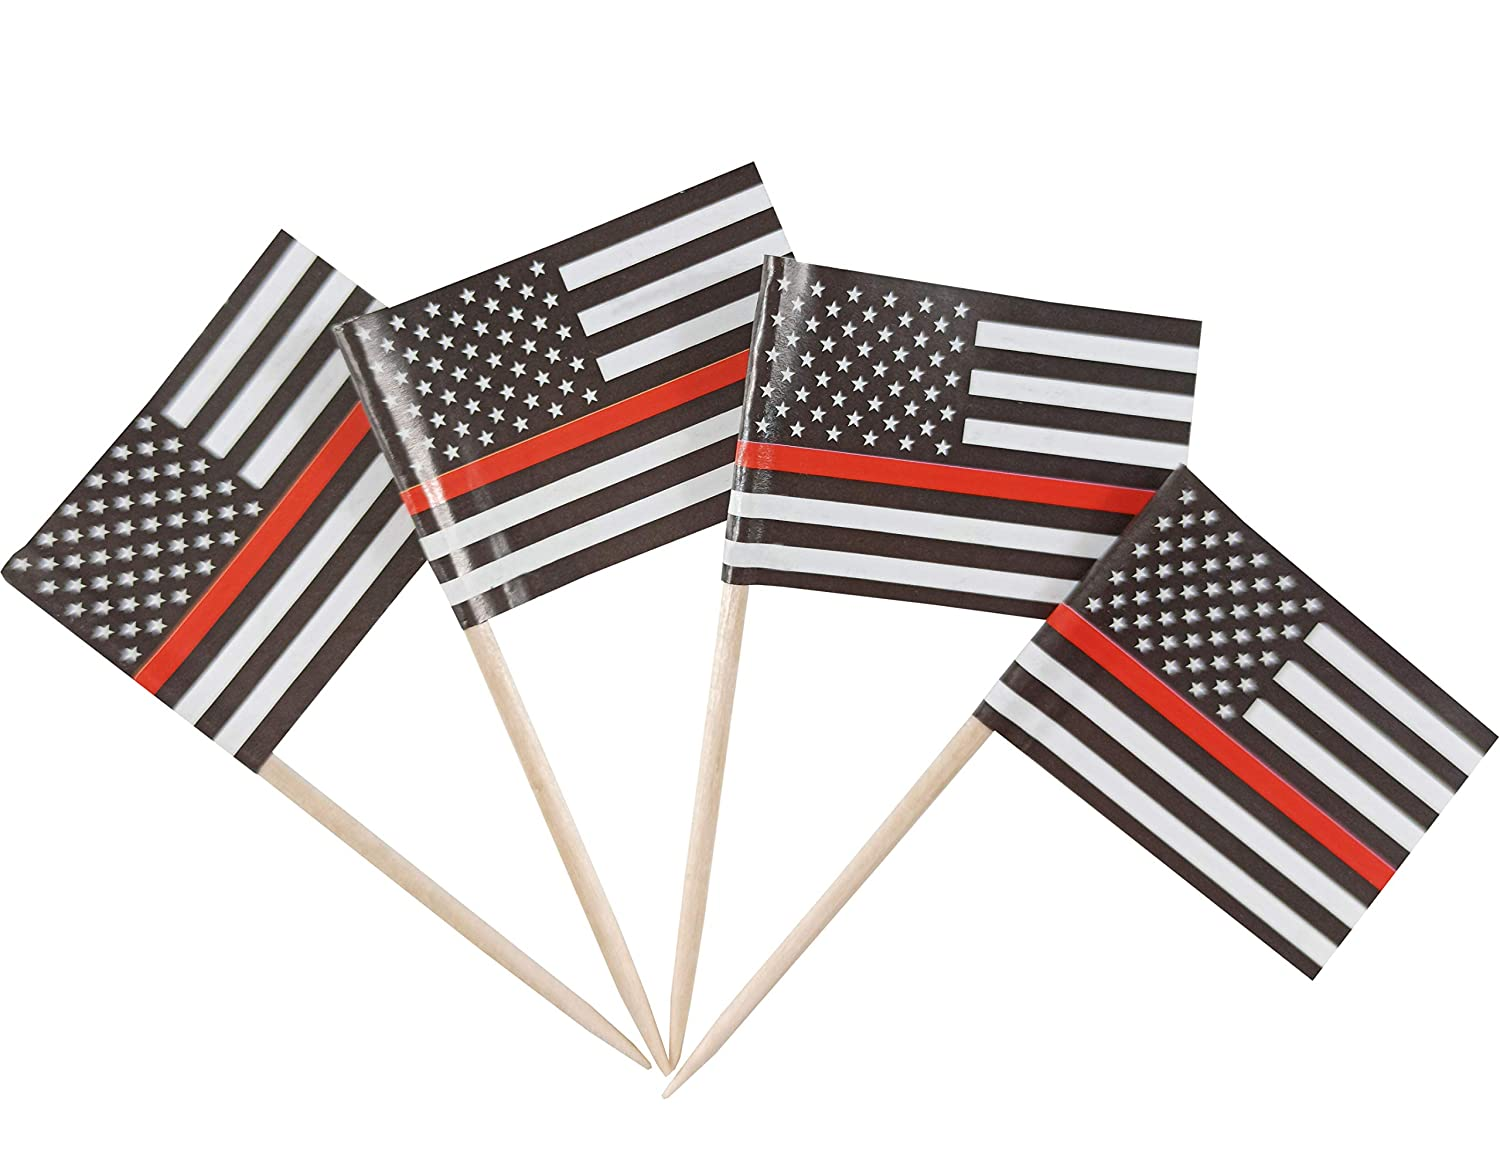 JBCD 200 Pcs US Thin Red Line Flag Toothpicks Fireman Firefighter Flags Cupcake Toppers Decorations, Cocktail Toothpick Flag Cake Topper Picks Mini Small Flag Cupcake Pick Sticks